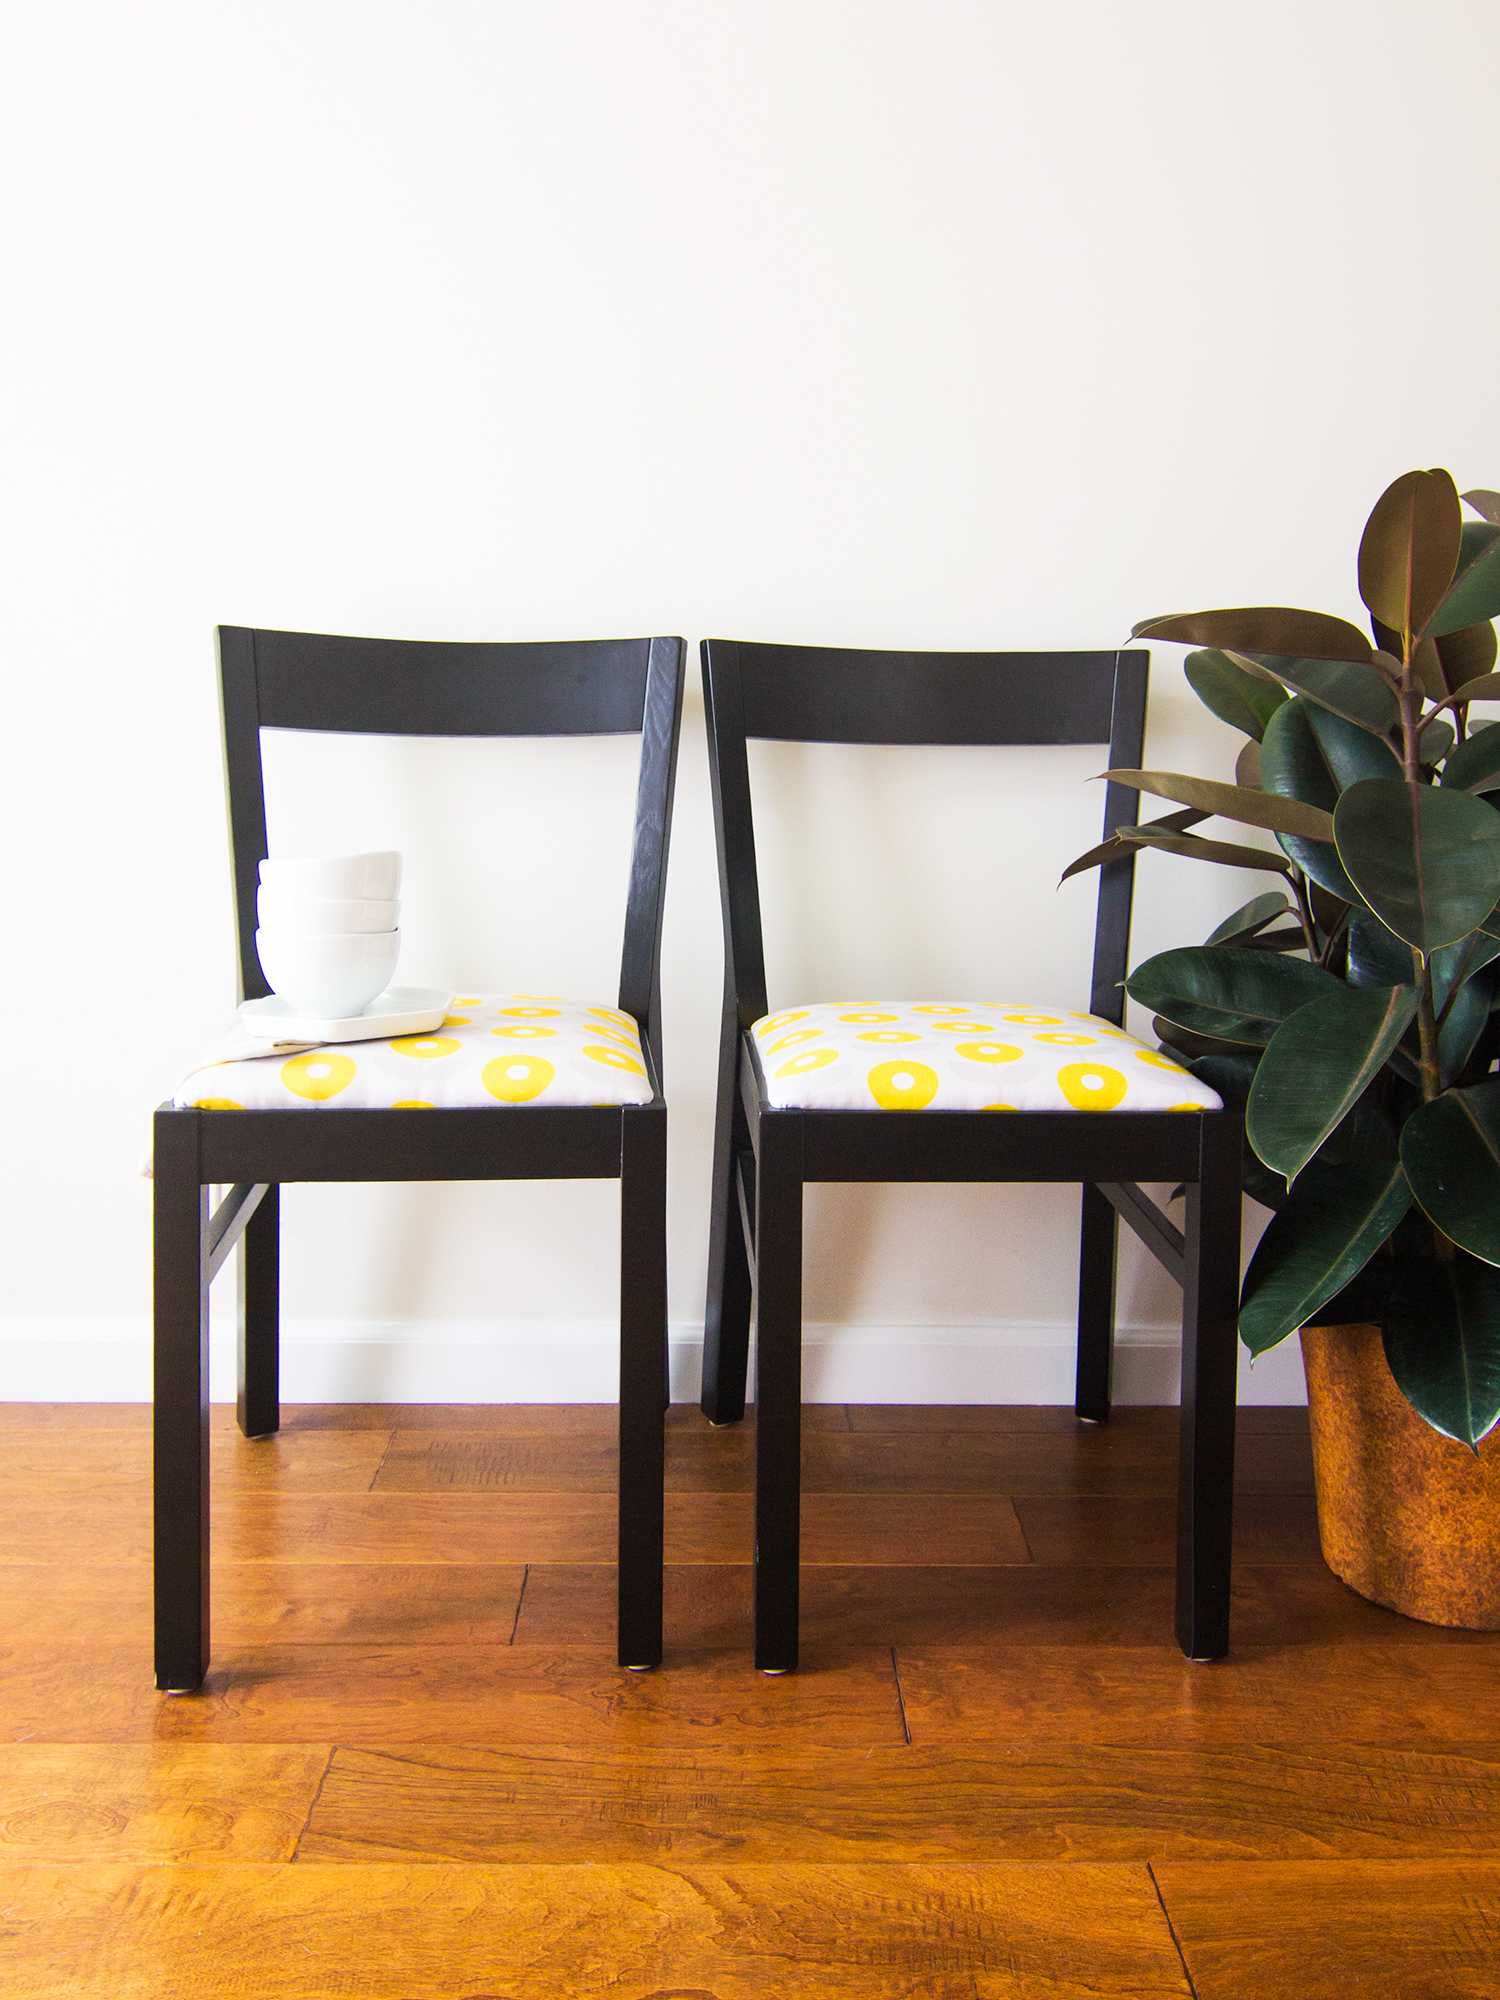 Give life to old chairs with your very own custom printed fabric! (Click through for tools, tips and tricks to upholstering chairs yourself)